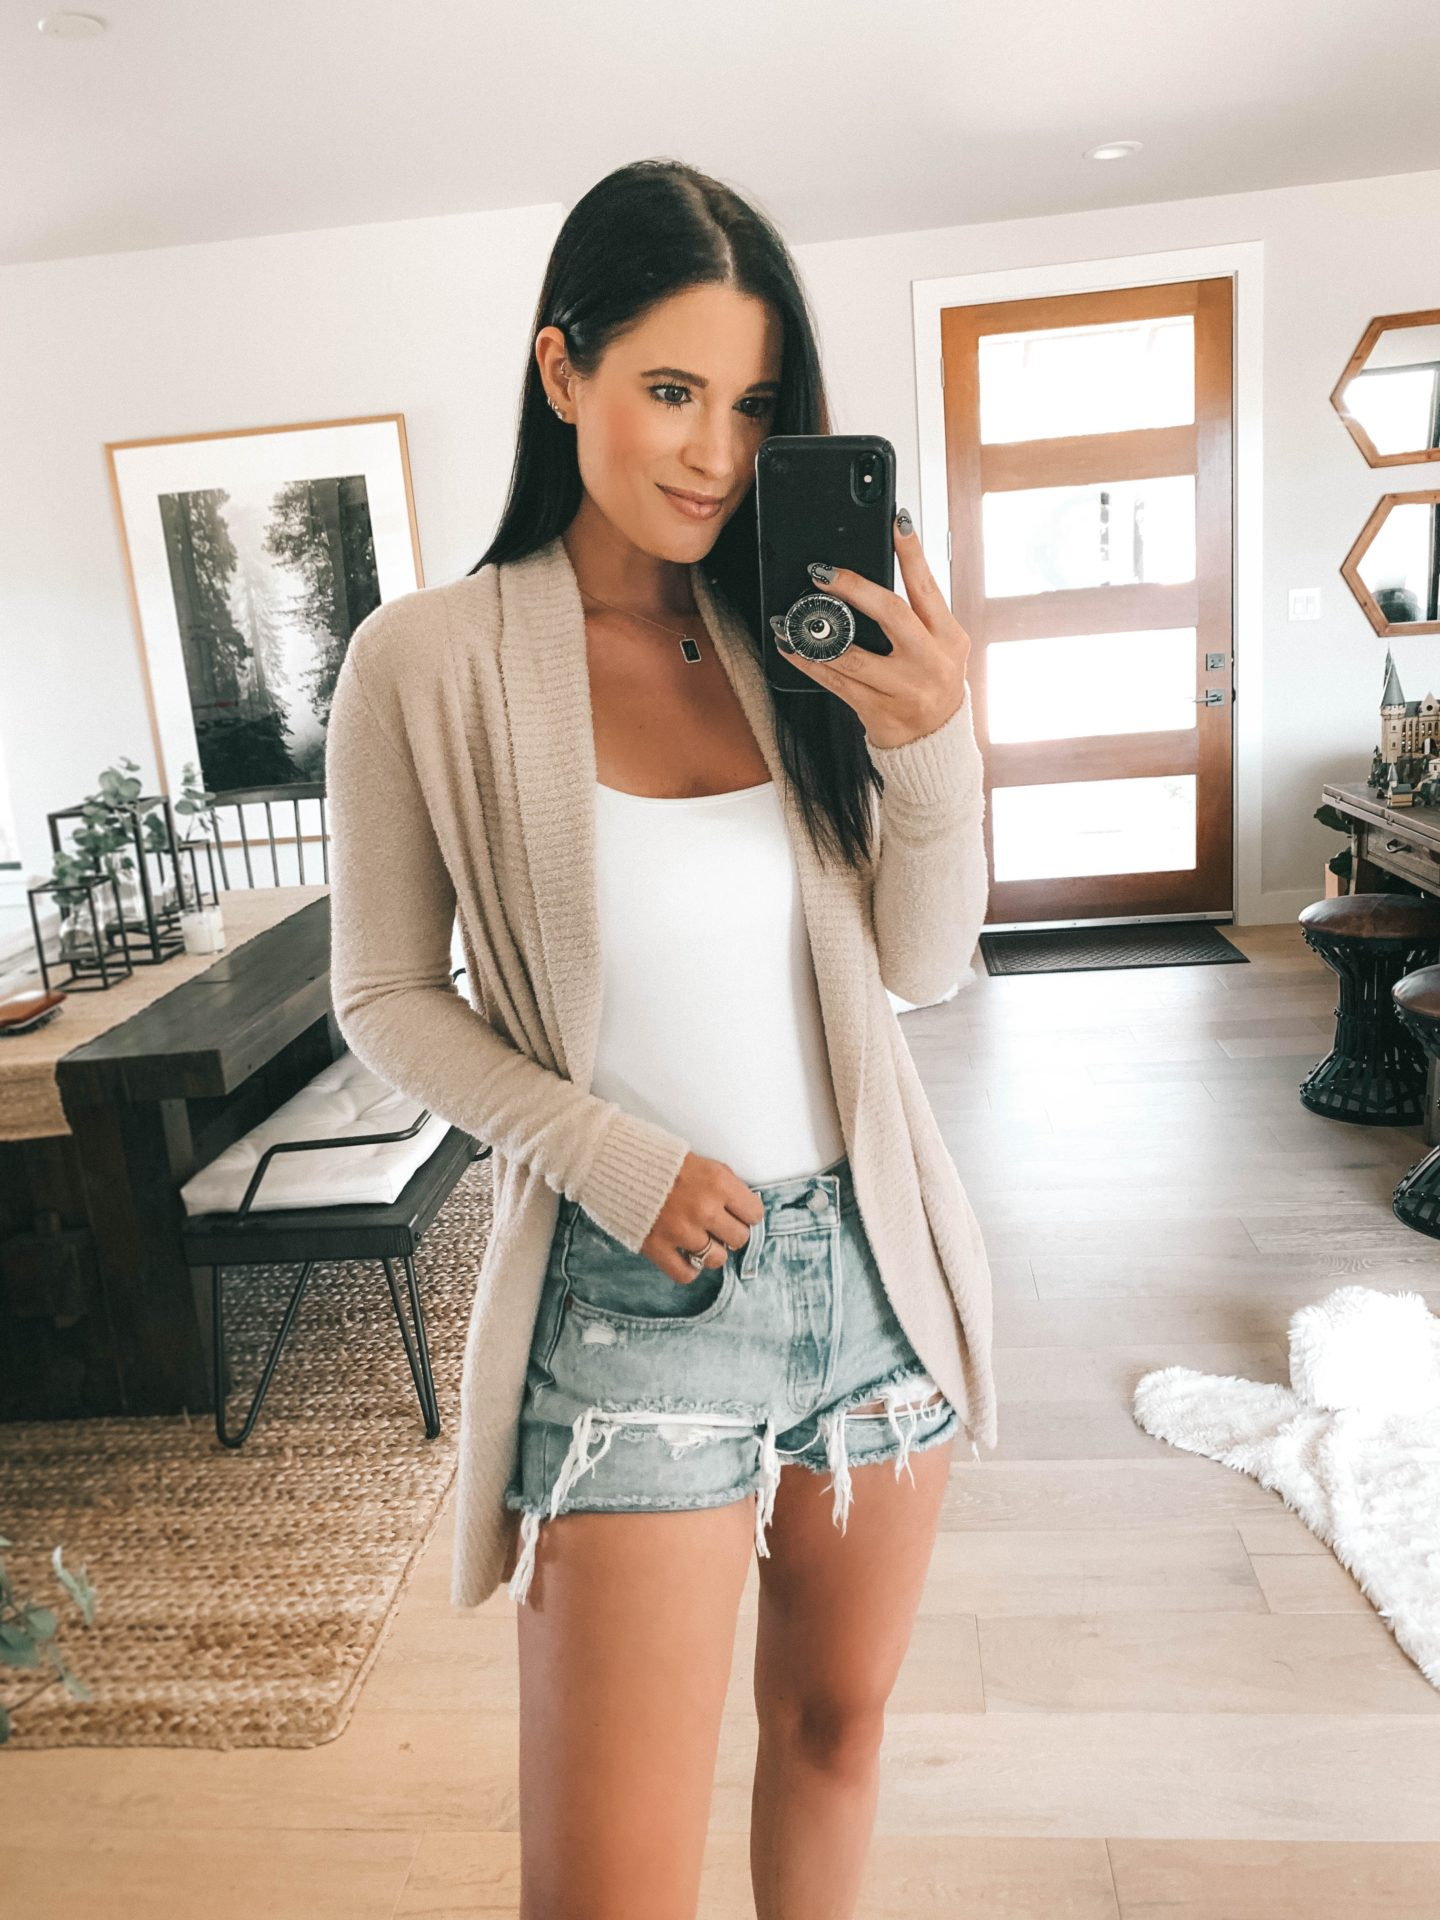 Nordstrom Anniversary Sale by popular Austin fashion blog, Dressed to Kill: image of a woman wearing a white tank, cutoff denim shorts, and a tan cardigan.